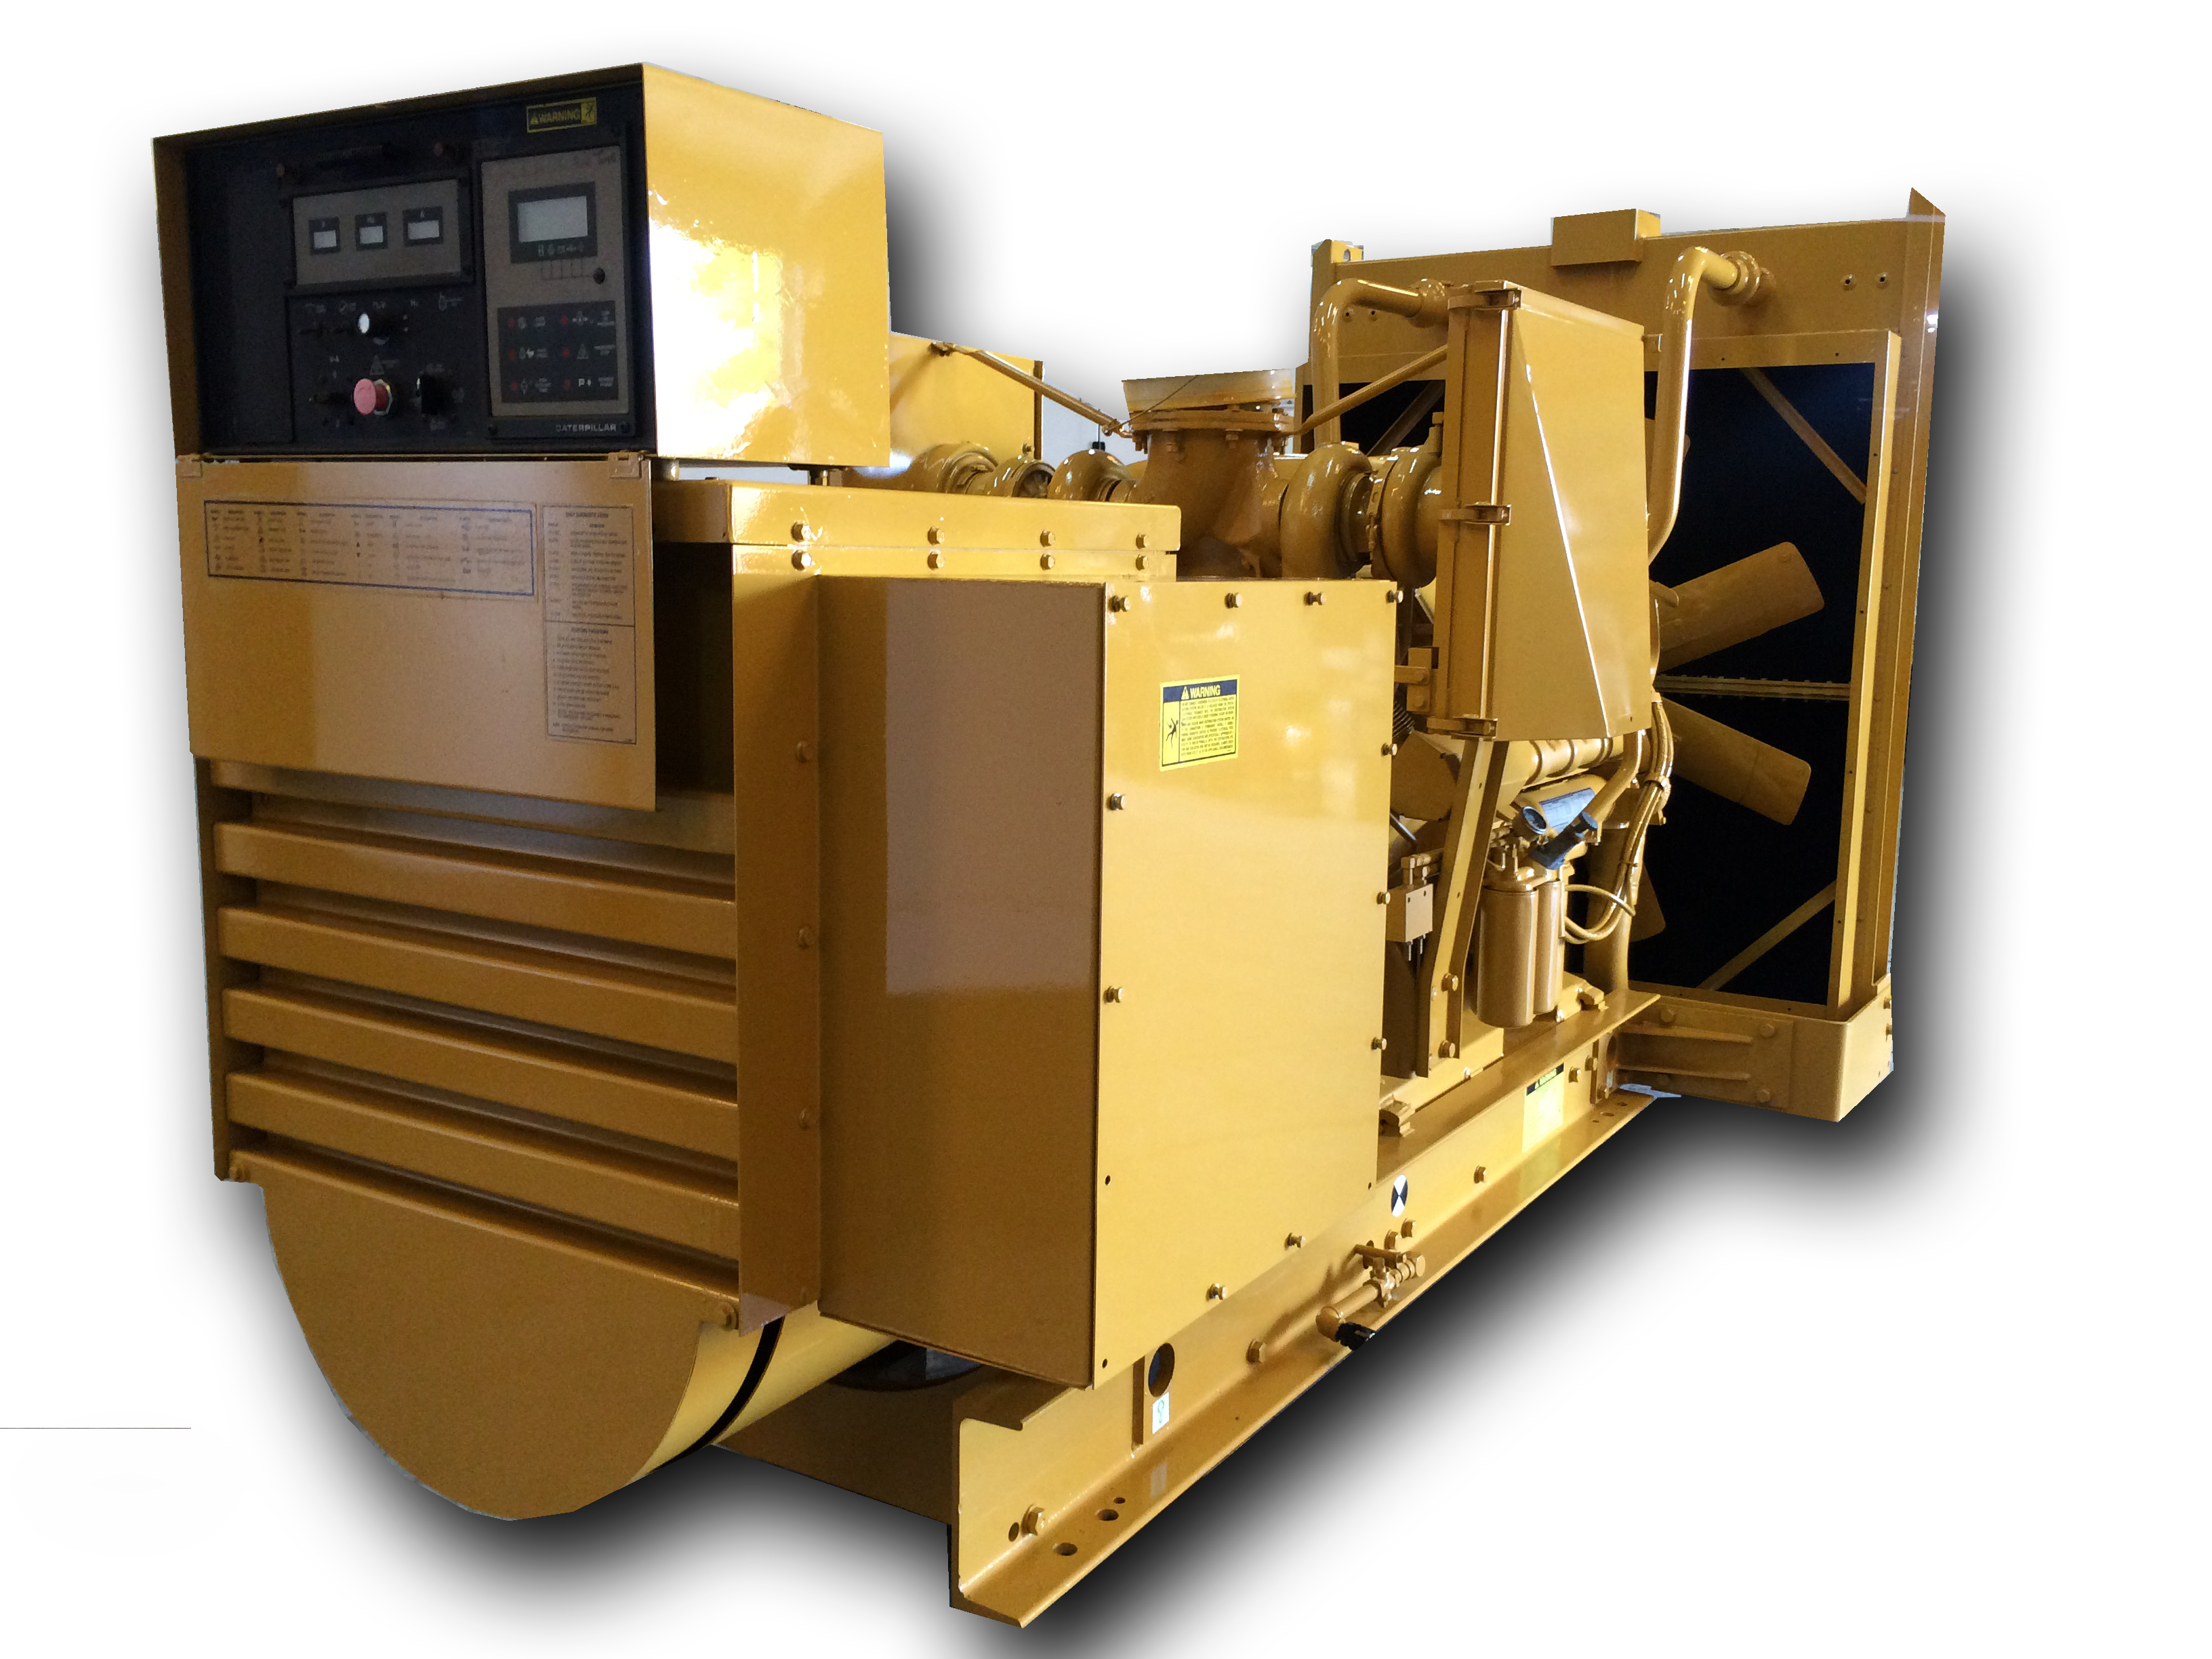 600 Kw Caterpillar Standby Diesel Generator Used